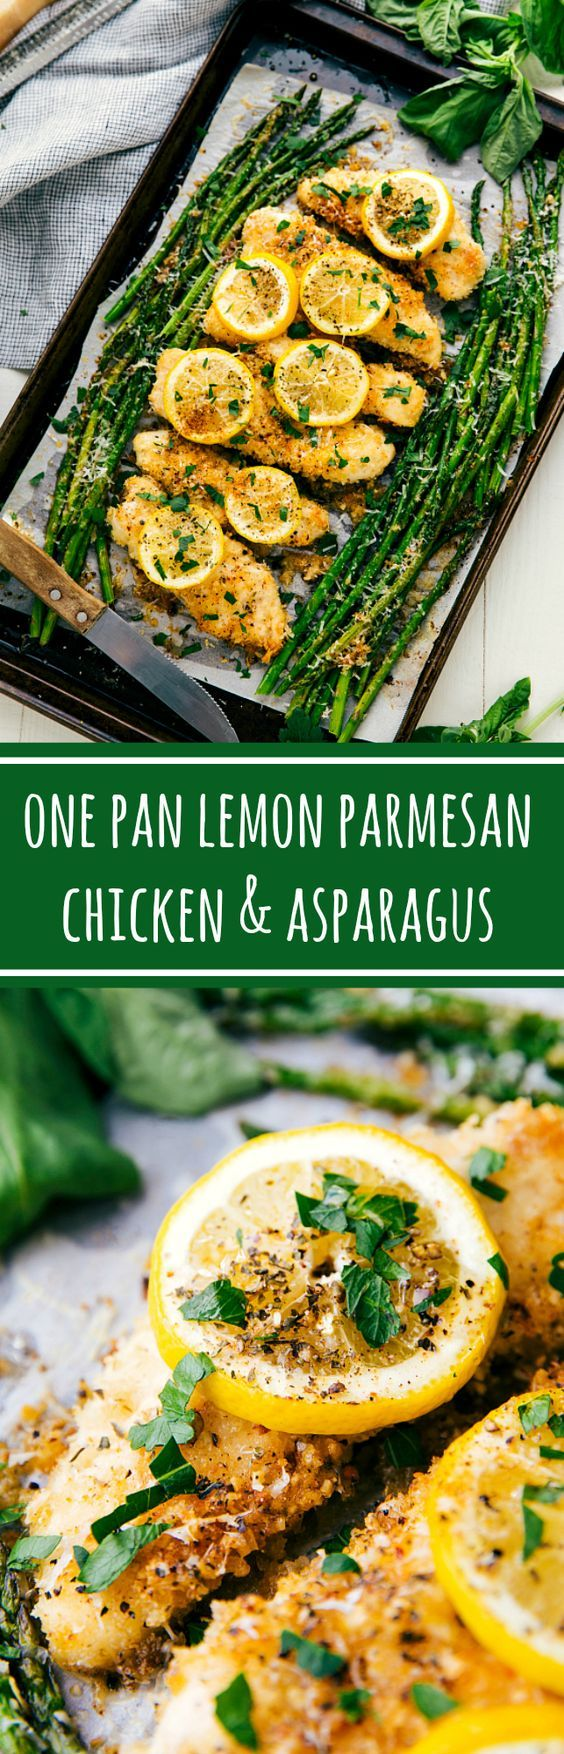 One Pan Lemon Parmesan Chicken and Asparagus: